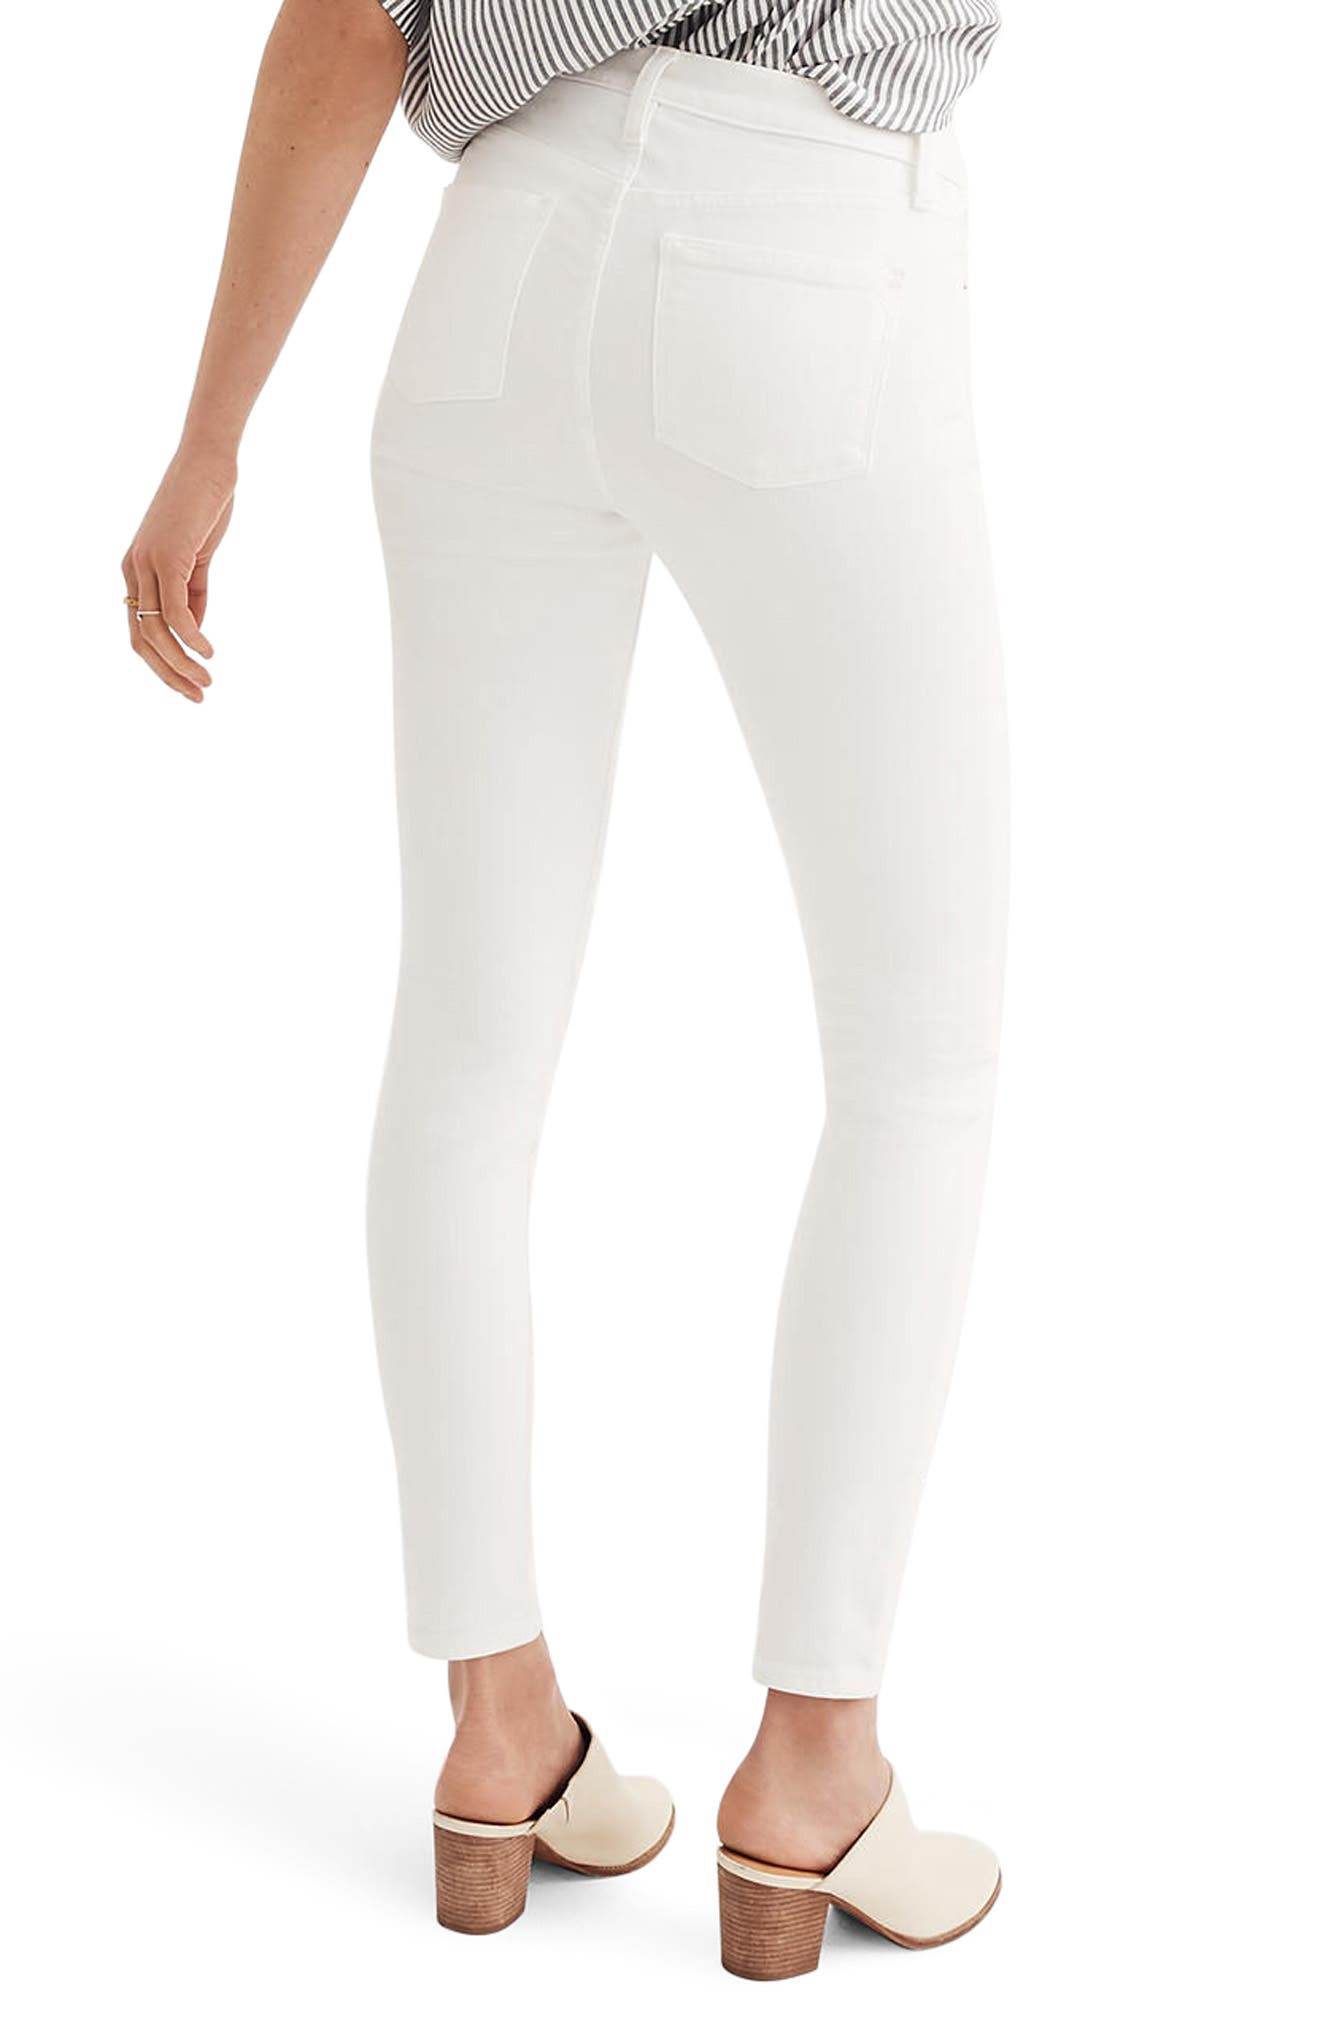 9-Inch High Waist Skinny Jeans,                             Alternate thumbnail 2, color,                             Pure White